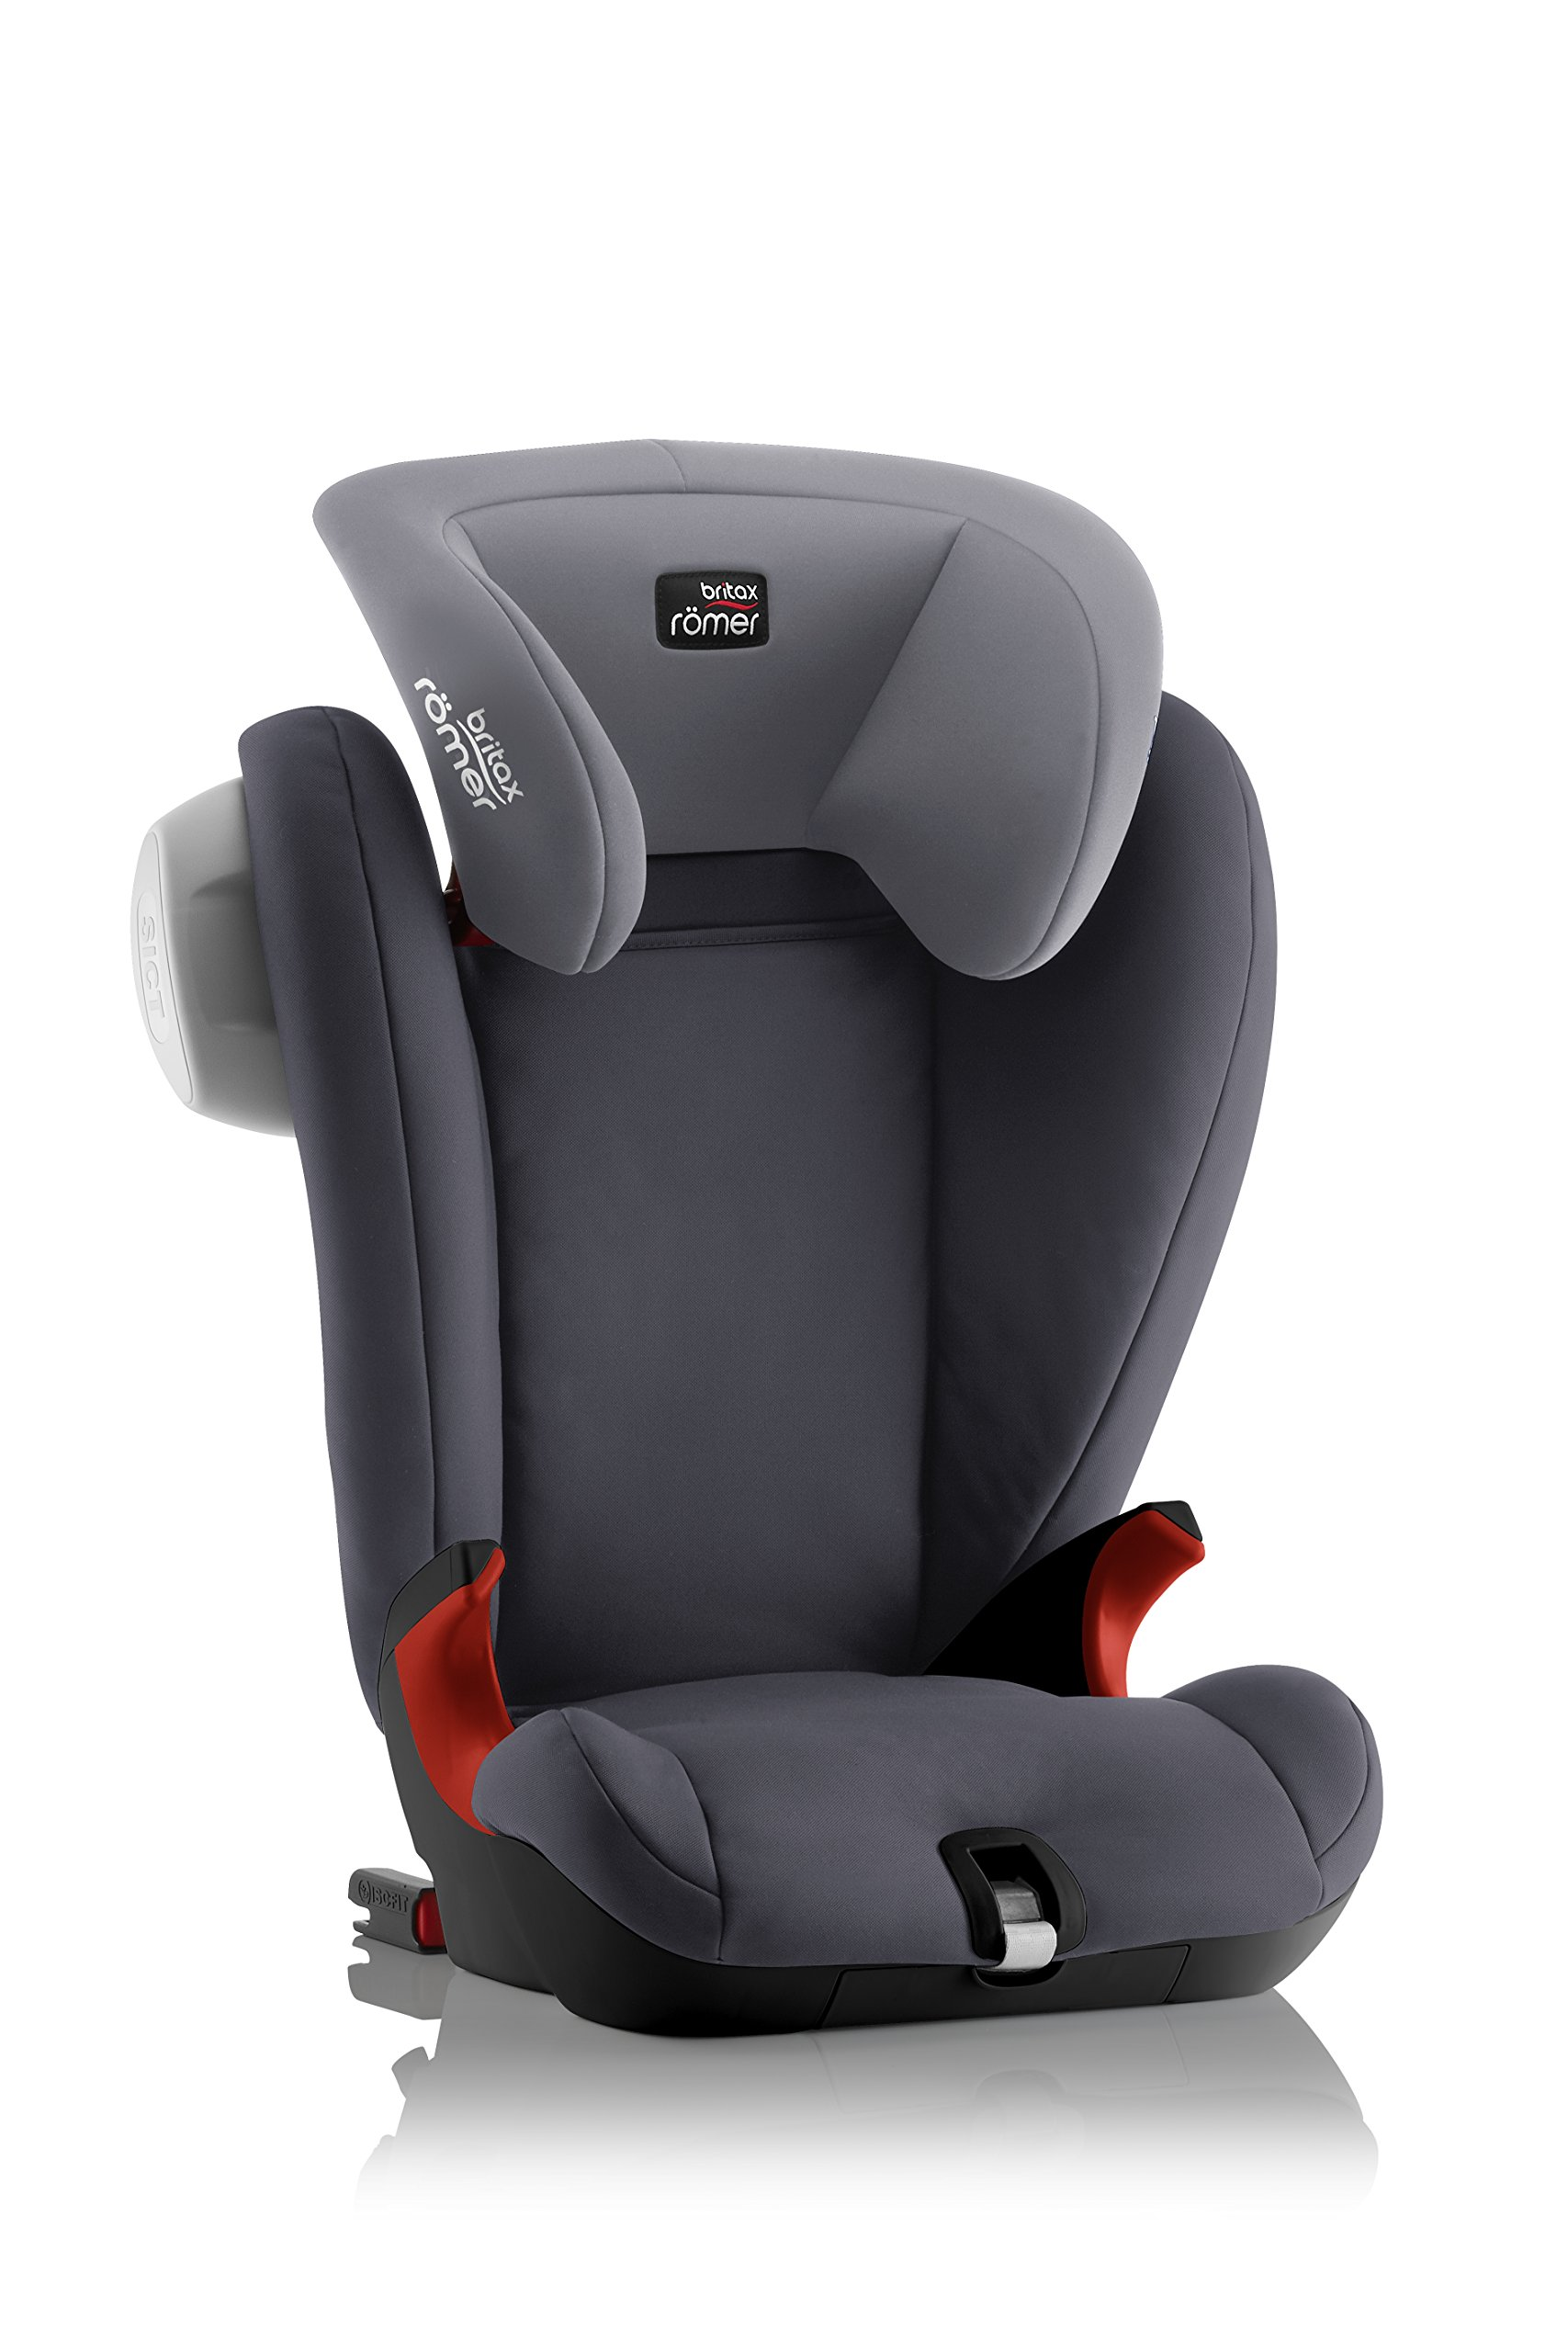 Britax Römer KIDFIX SL SICT BLACK SERIES Group 2-3 (15-36kg) Car Seat - Storm Grey Britax Römer Side impact protection - deep, softly padded side wings and sict technology, removable to use only on the side closest to the door Simple installation - soft-latch isofit system Misuse limiting design - intuitively positioned seat belt guides 3